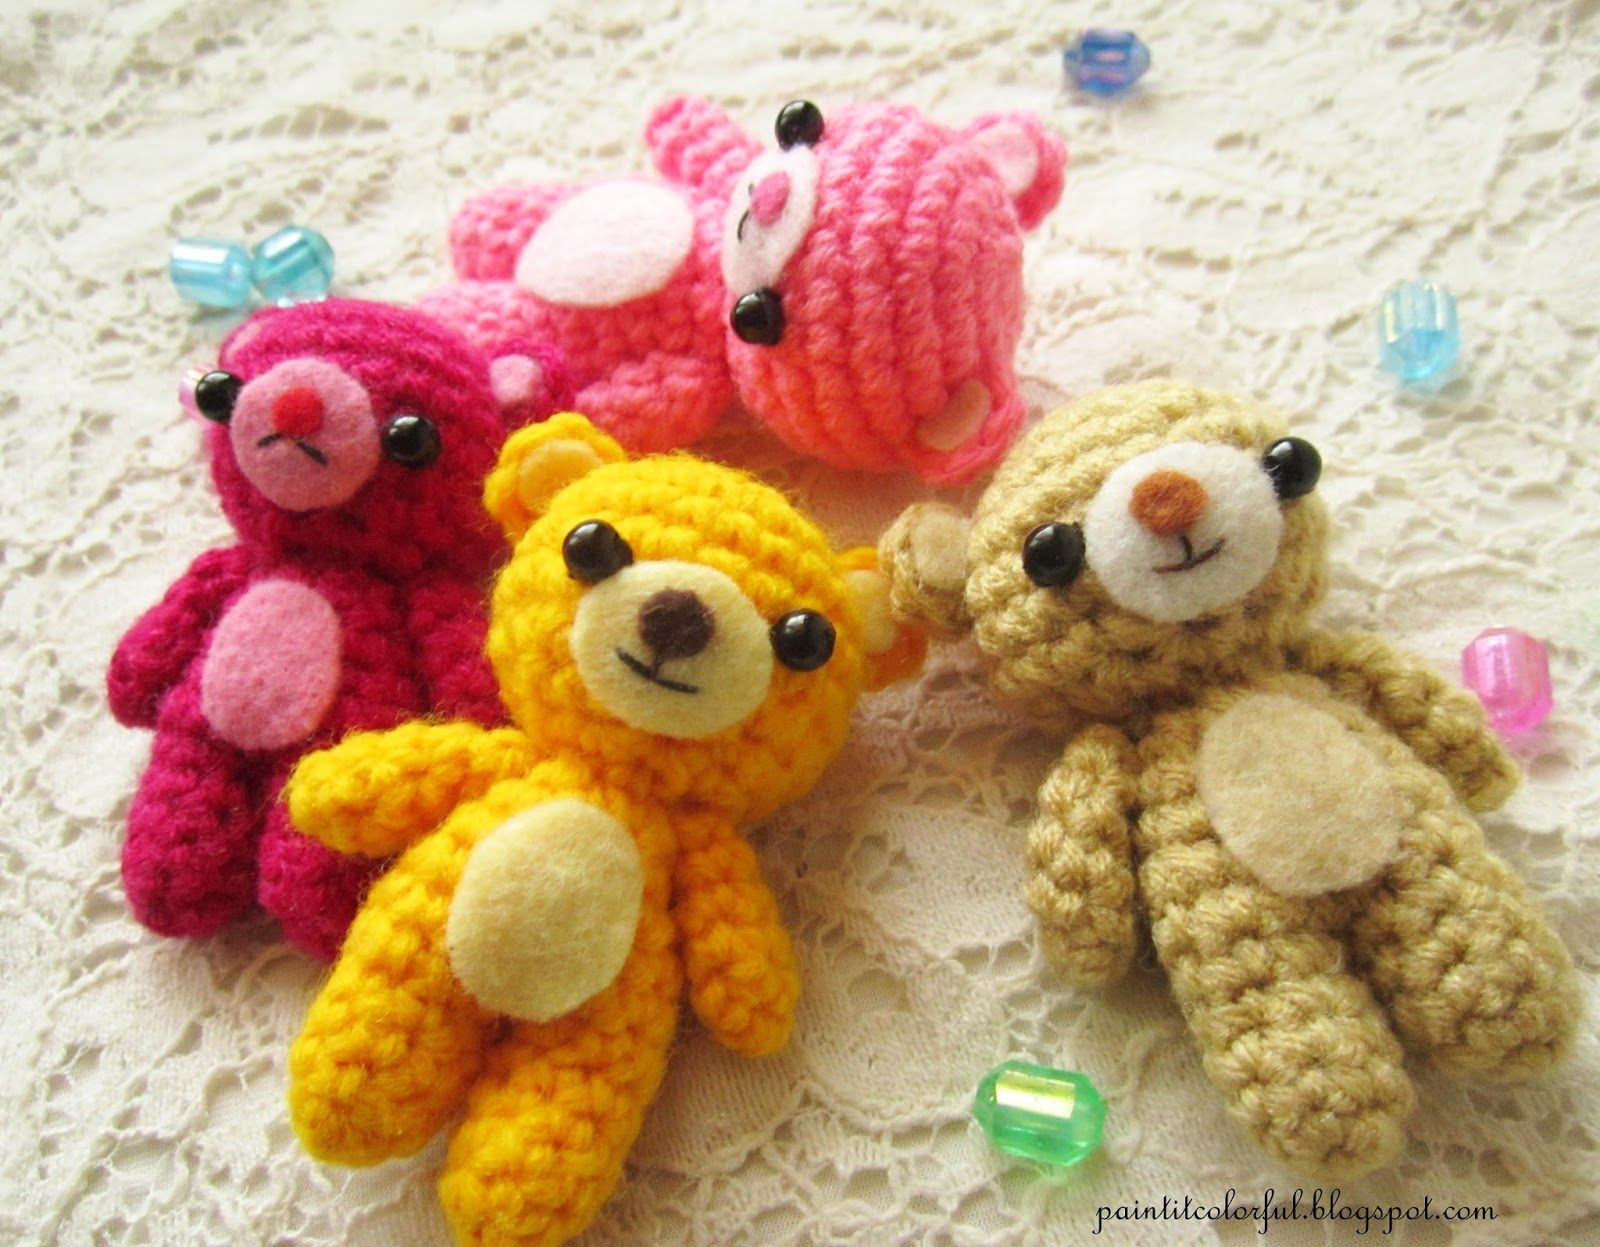 Amigurumi Little Teddy Bear : Amigurumi Teddy bear pattern - A little love everyday!